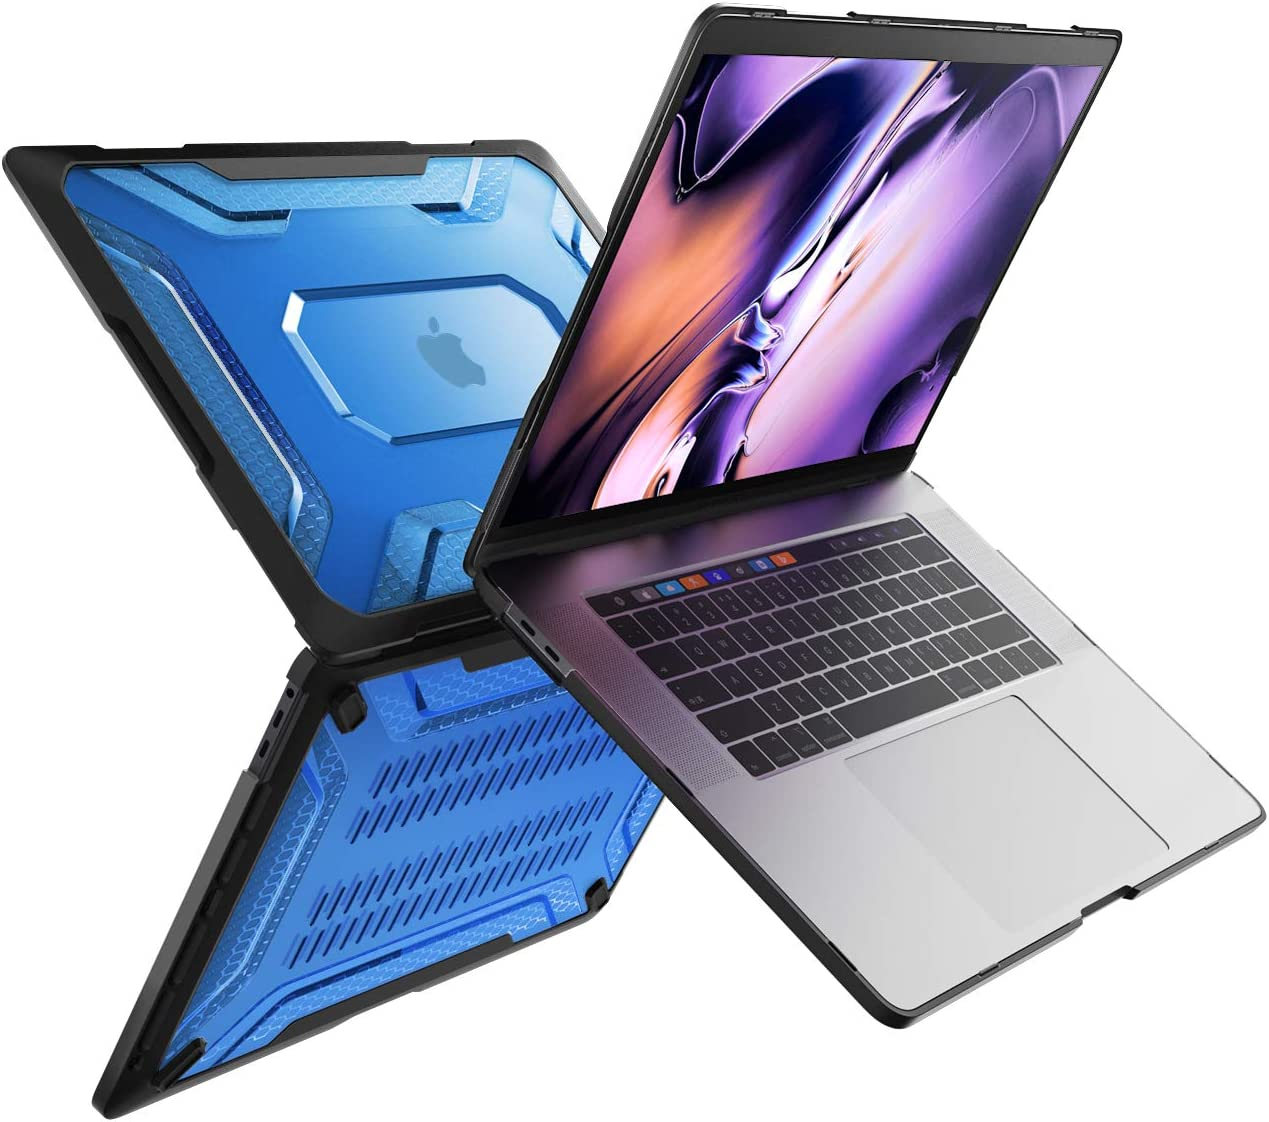 SUPCASE [Unicorn Beetle Series] Case Designed for MacBook Pro 16 inch A2141 (2019 Release), Slim Rubberized TPU Bumper Cover with Touch Bar and Touch ID (Blue)